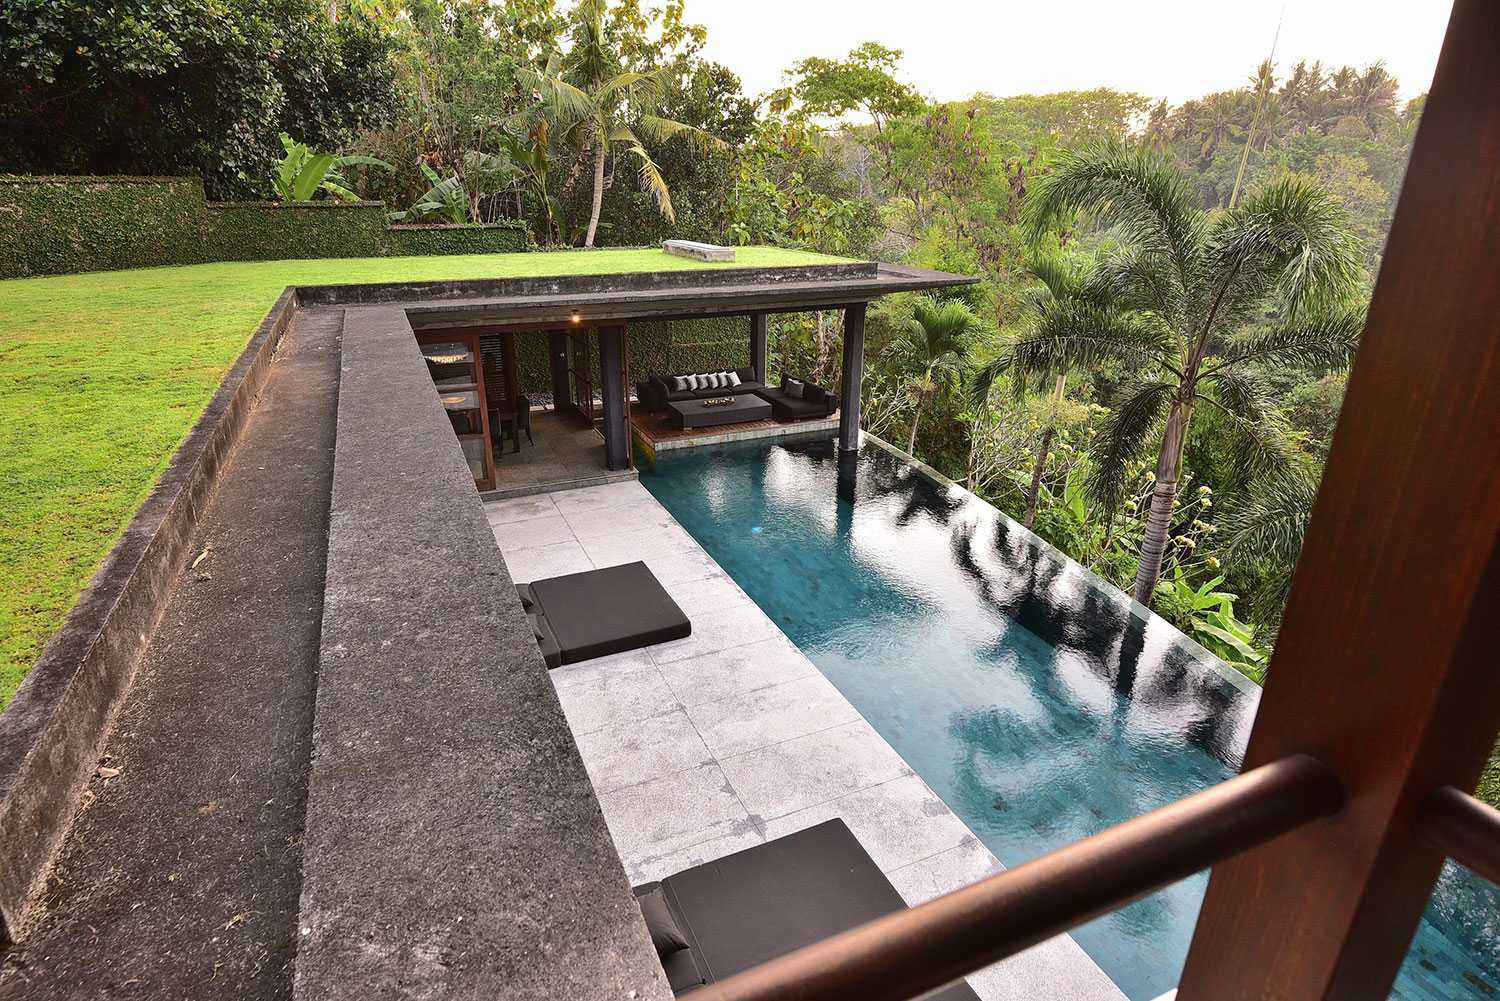 Agung Budi Raharsa | Architecture & Engineering Vanishing Villa - Bali Bali, Indonesia Kabupaten Tabanan, Bali, Indonesia Swimming Pool View Contemporary 49901